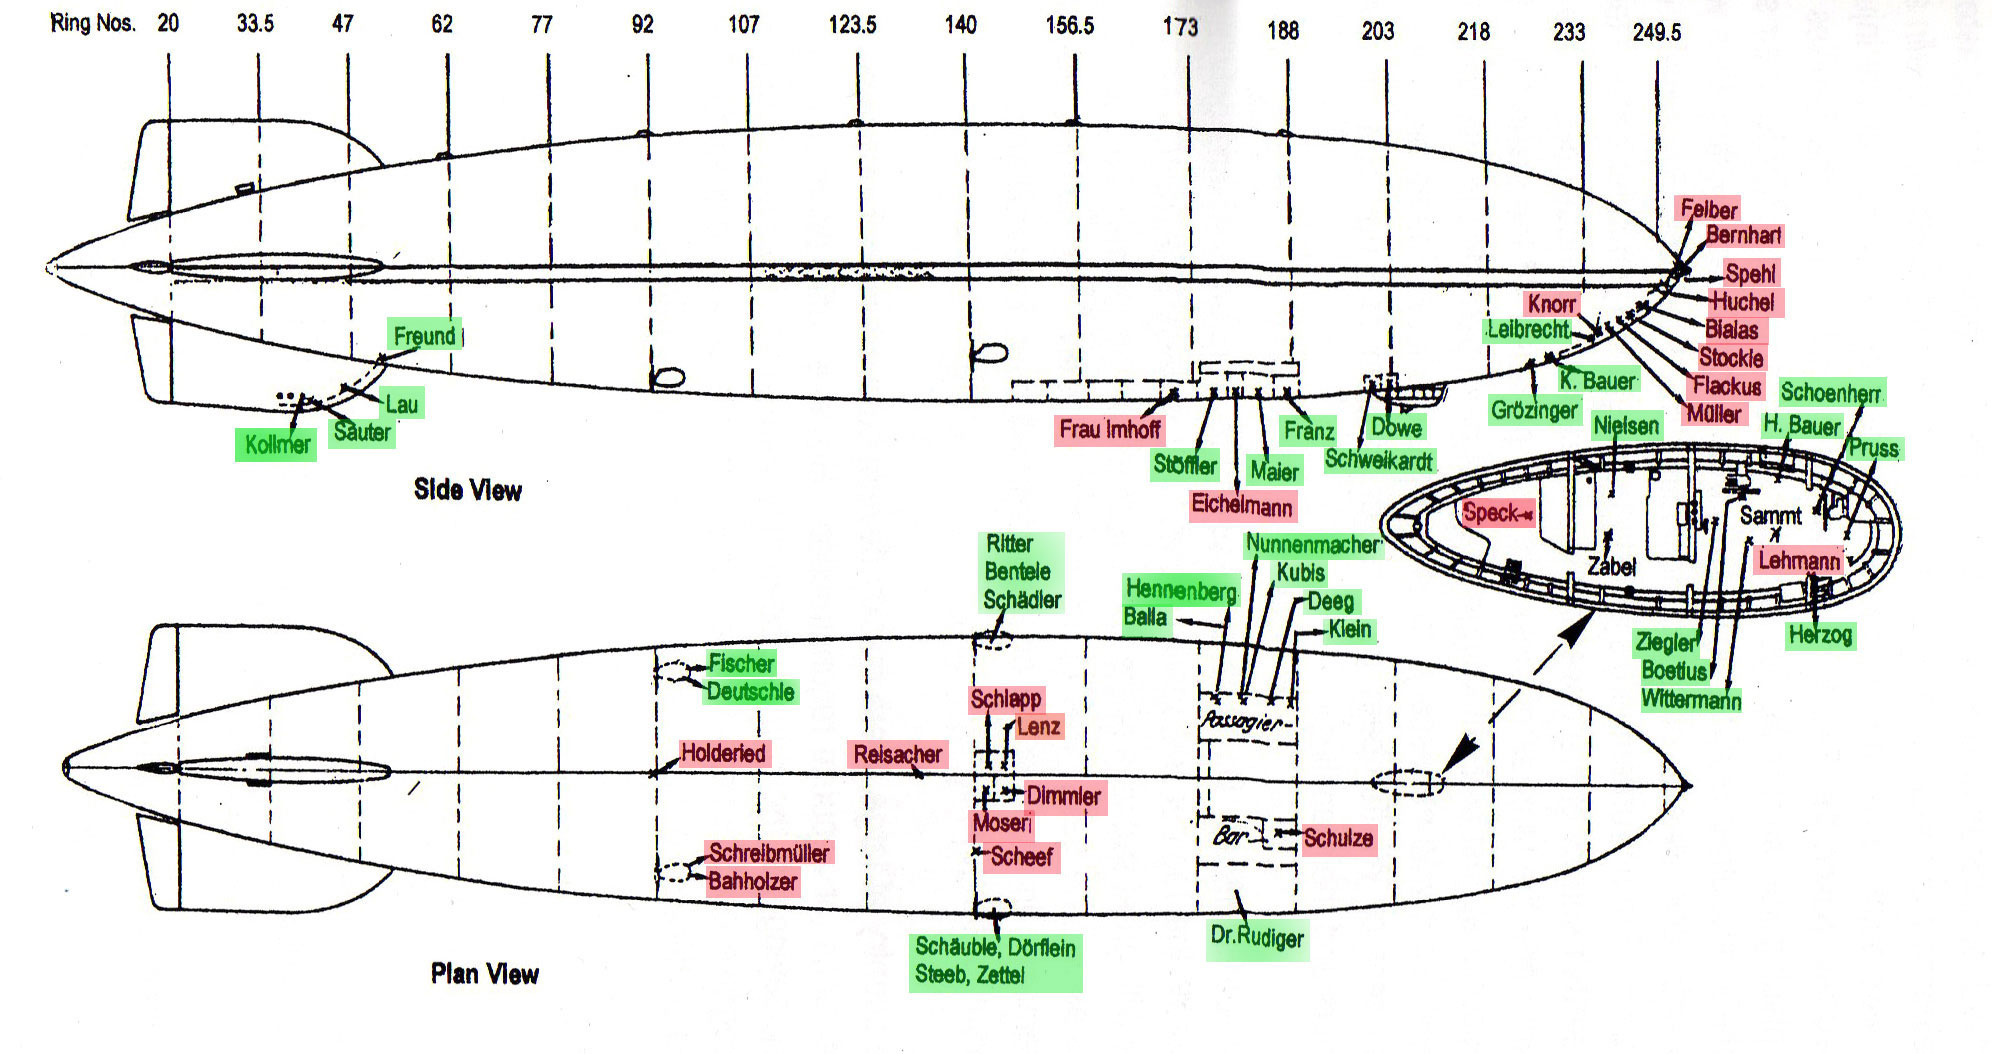 The Hindenburg Disaster Circuit Diagram Engine Schematic Ks3 Location Of Officers And Crew At Time Fire Those Killed Are In Red